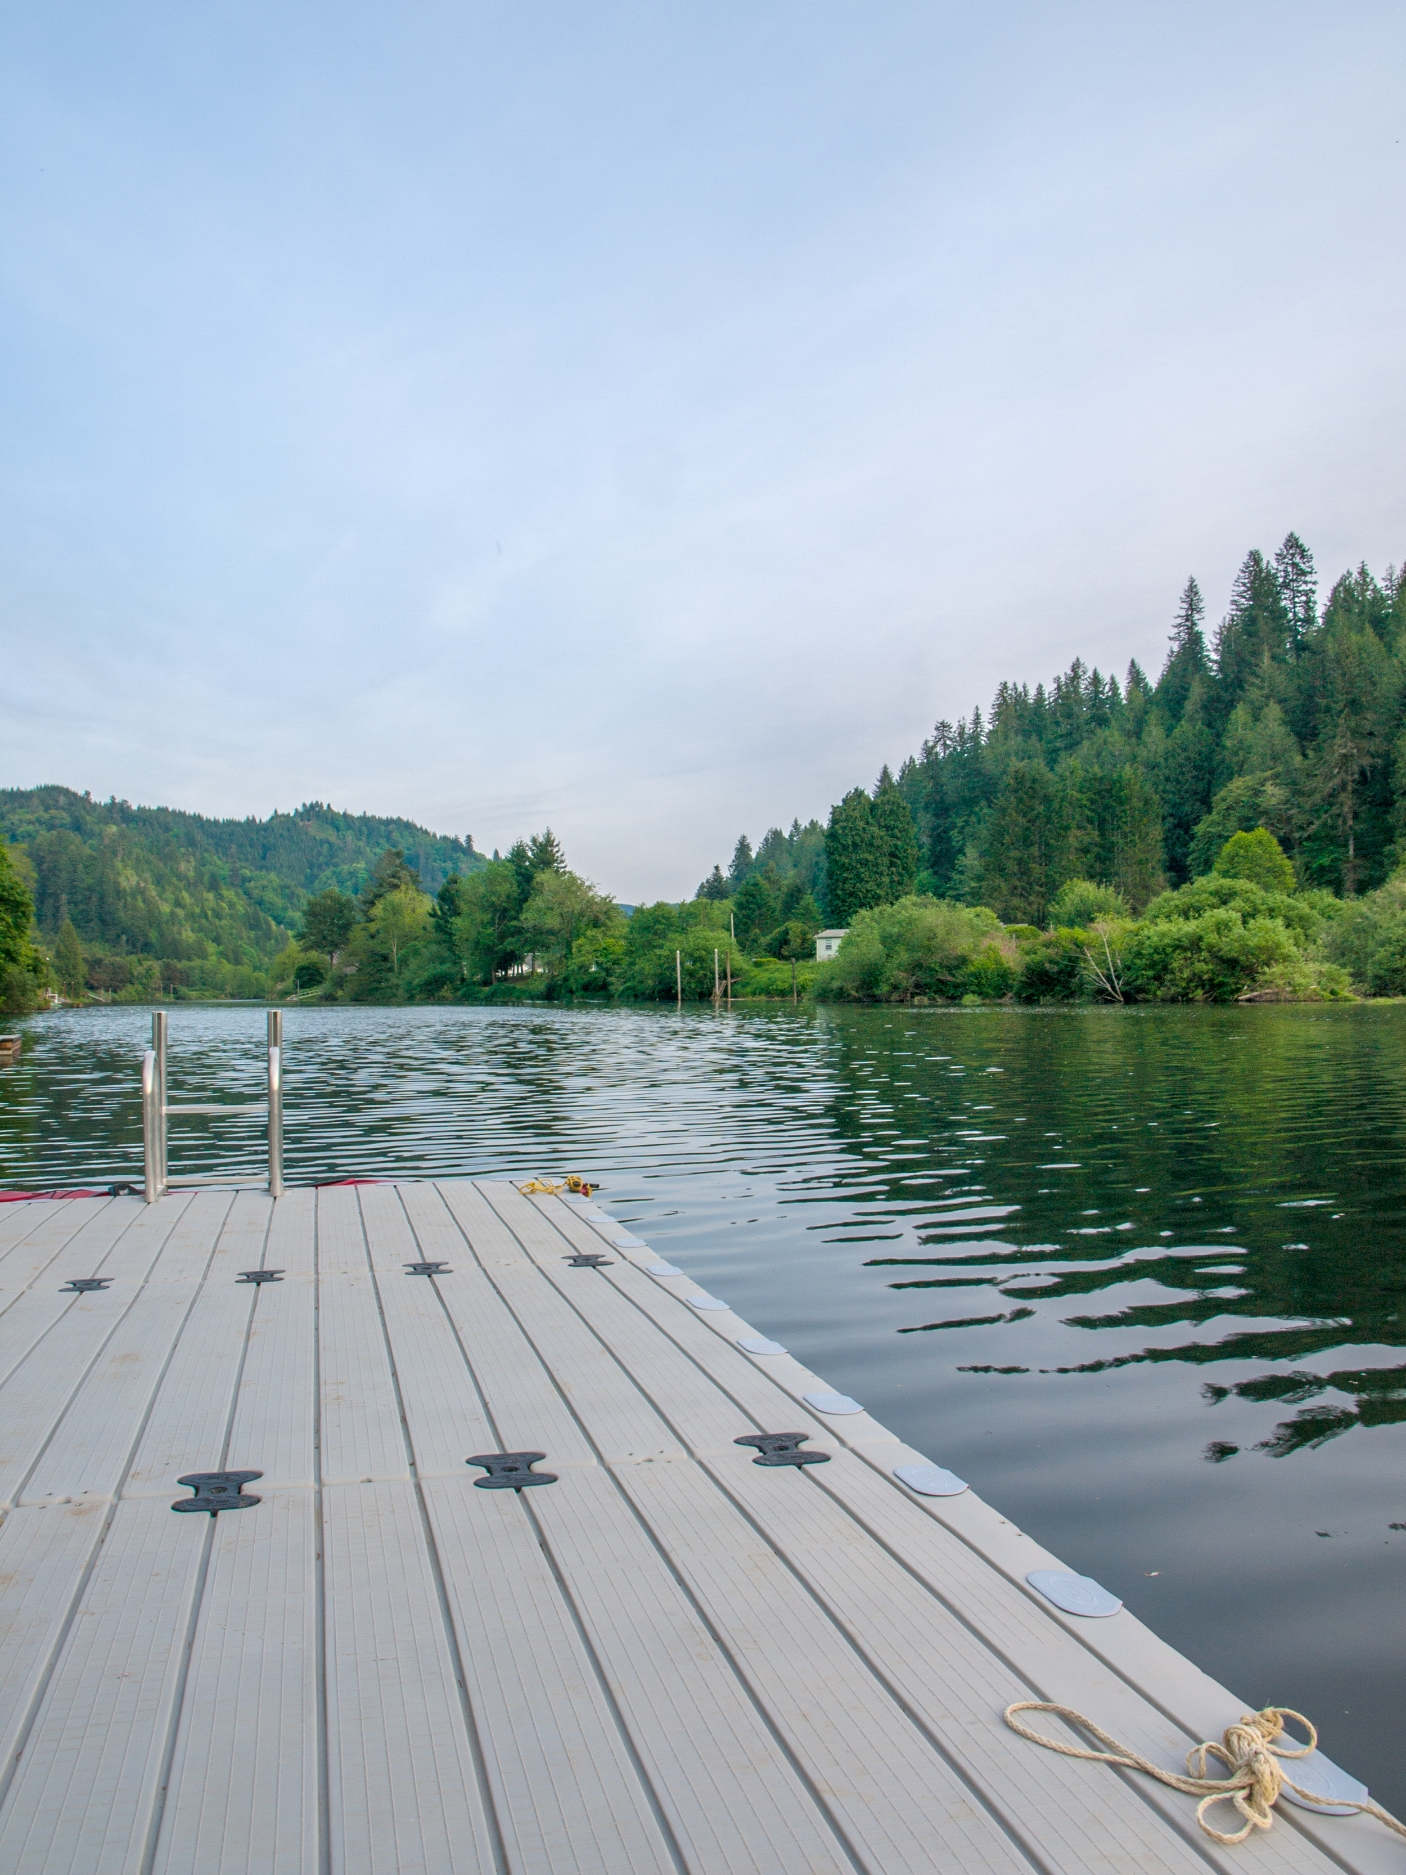 The dock: a great place to quietly read a book or dry yourself off in the sun after a refreshing swim.